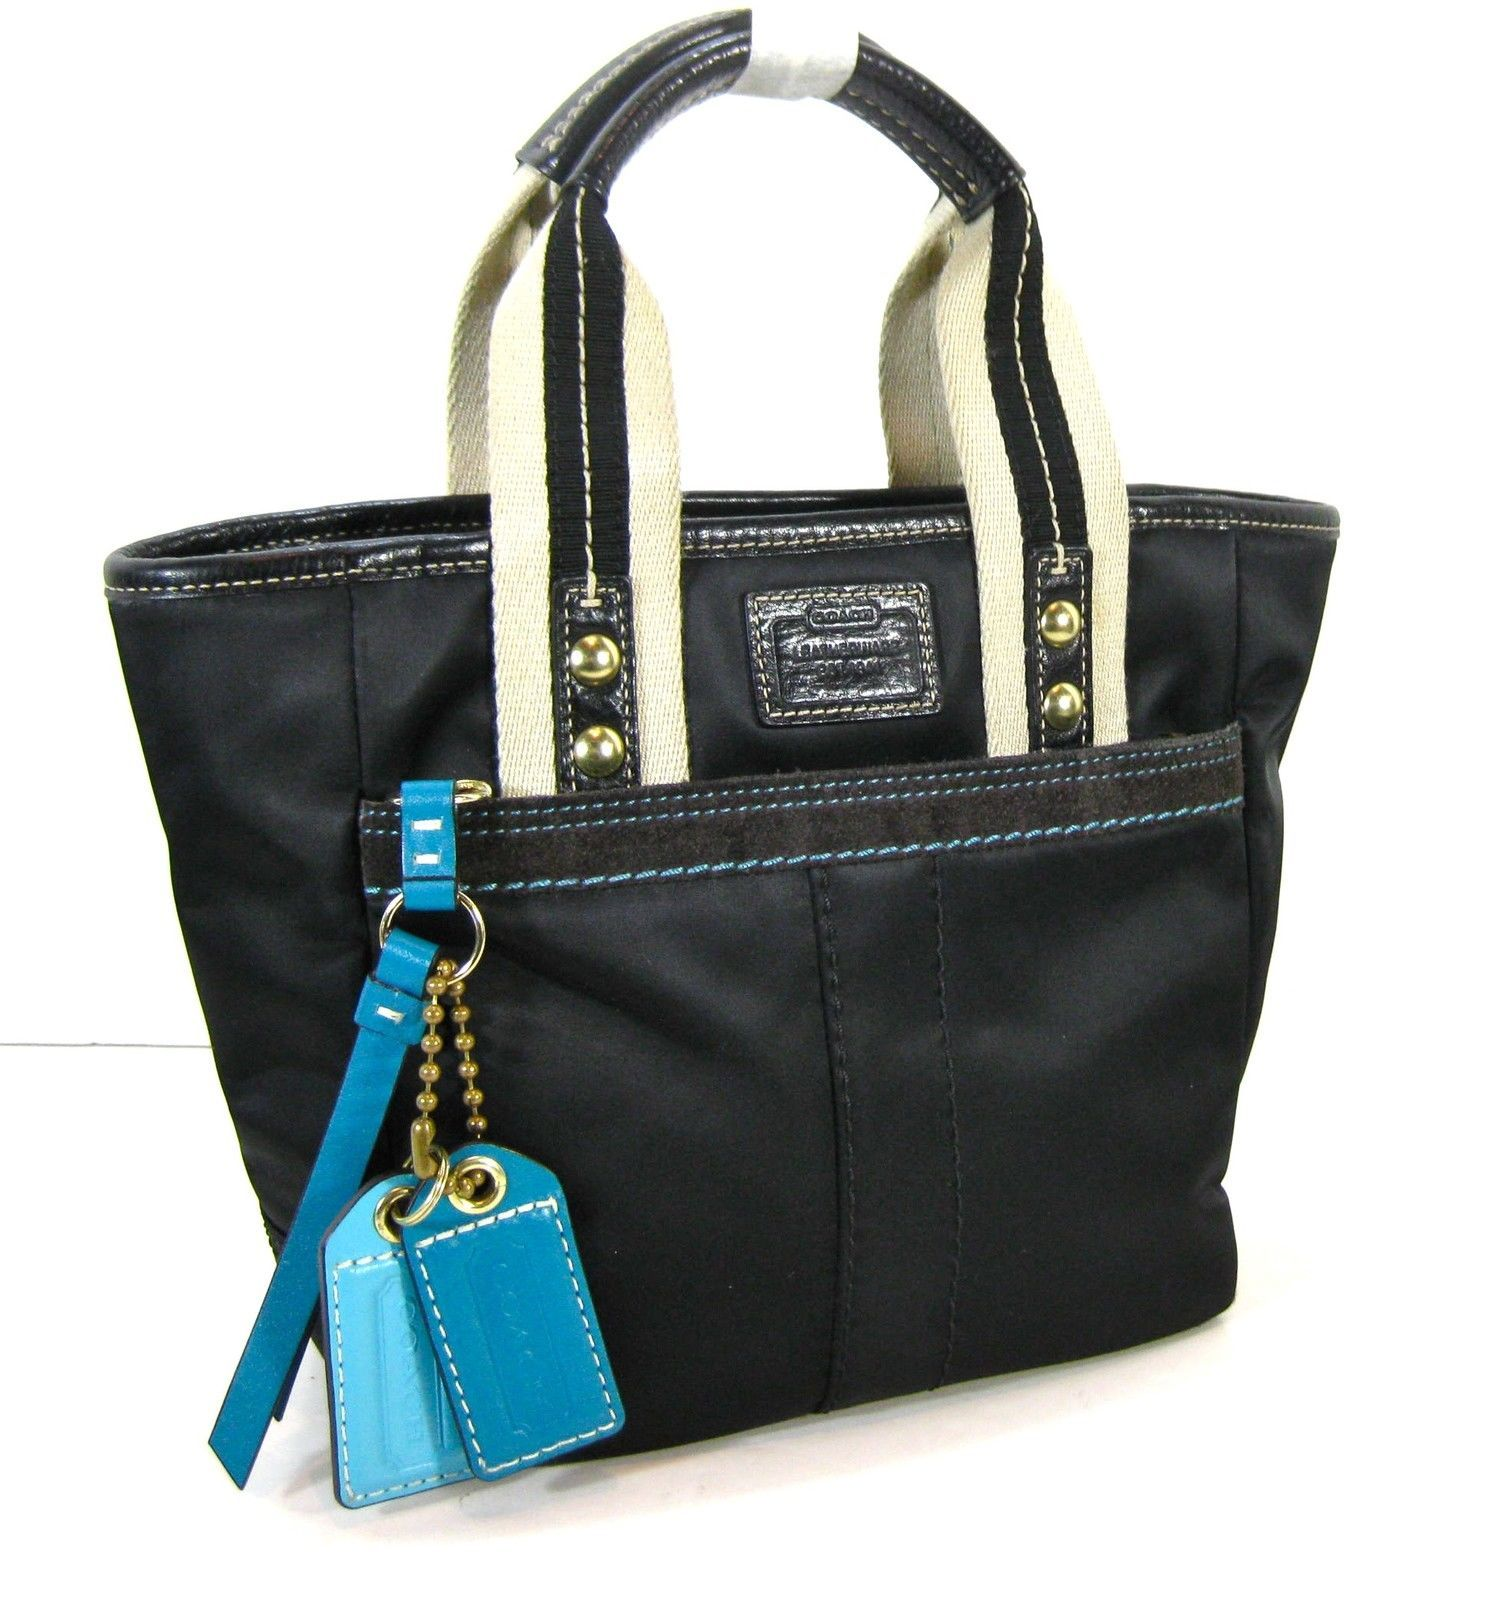 COACH Authentic Black w/ Blue Accents Sateen Leather Tote Handbag Purse A06M-126